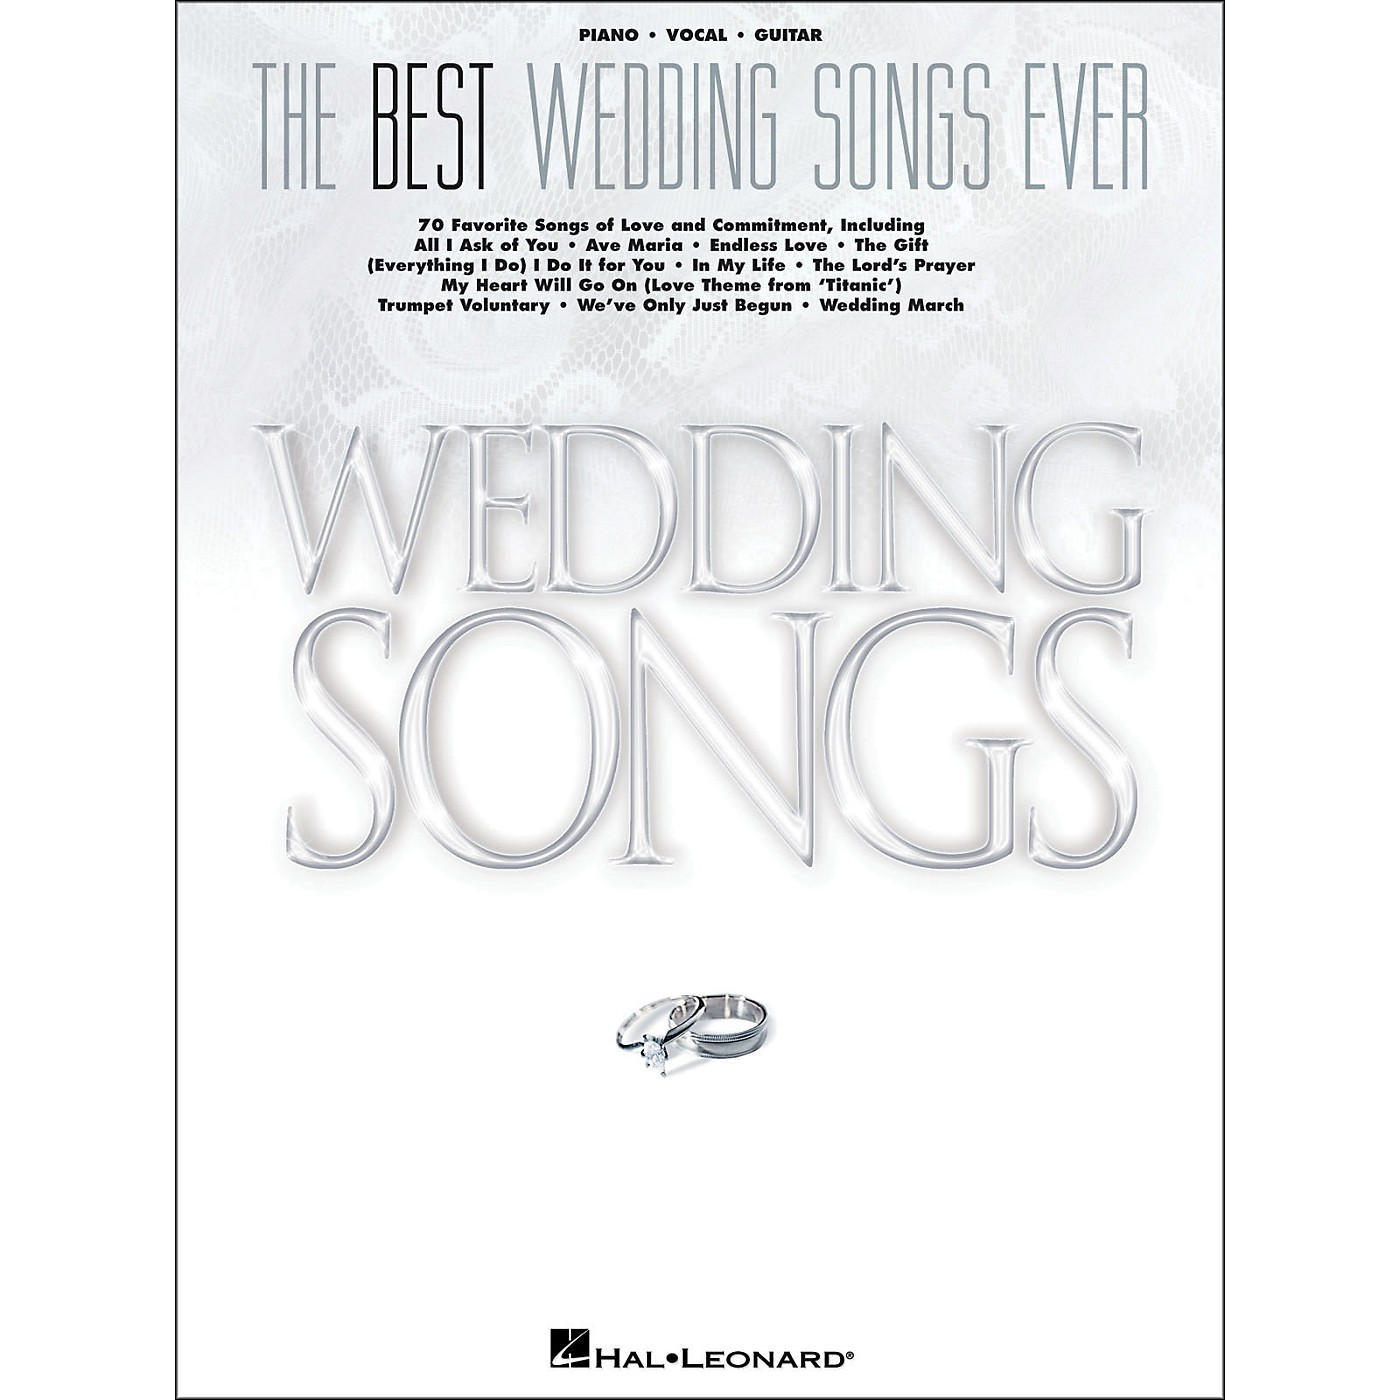 Hal Leonard The Best Wedding Songs Ever arranged for piano, vocal, and guitar (P/V/G) thumbnail